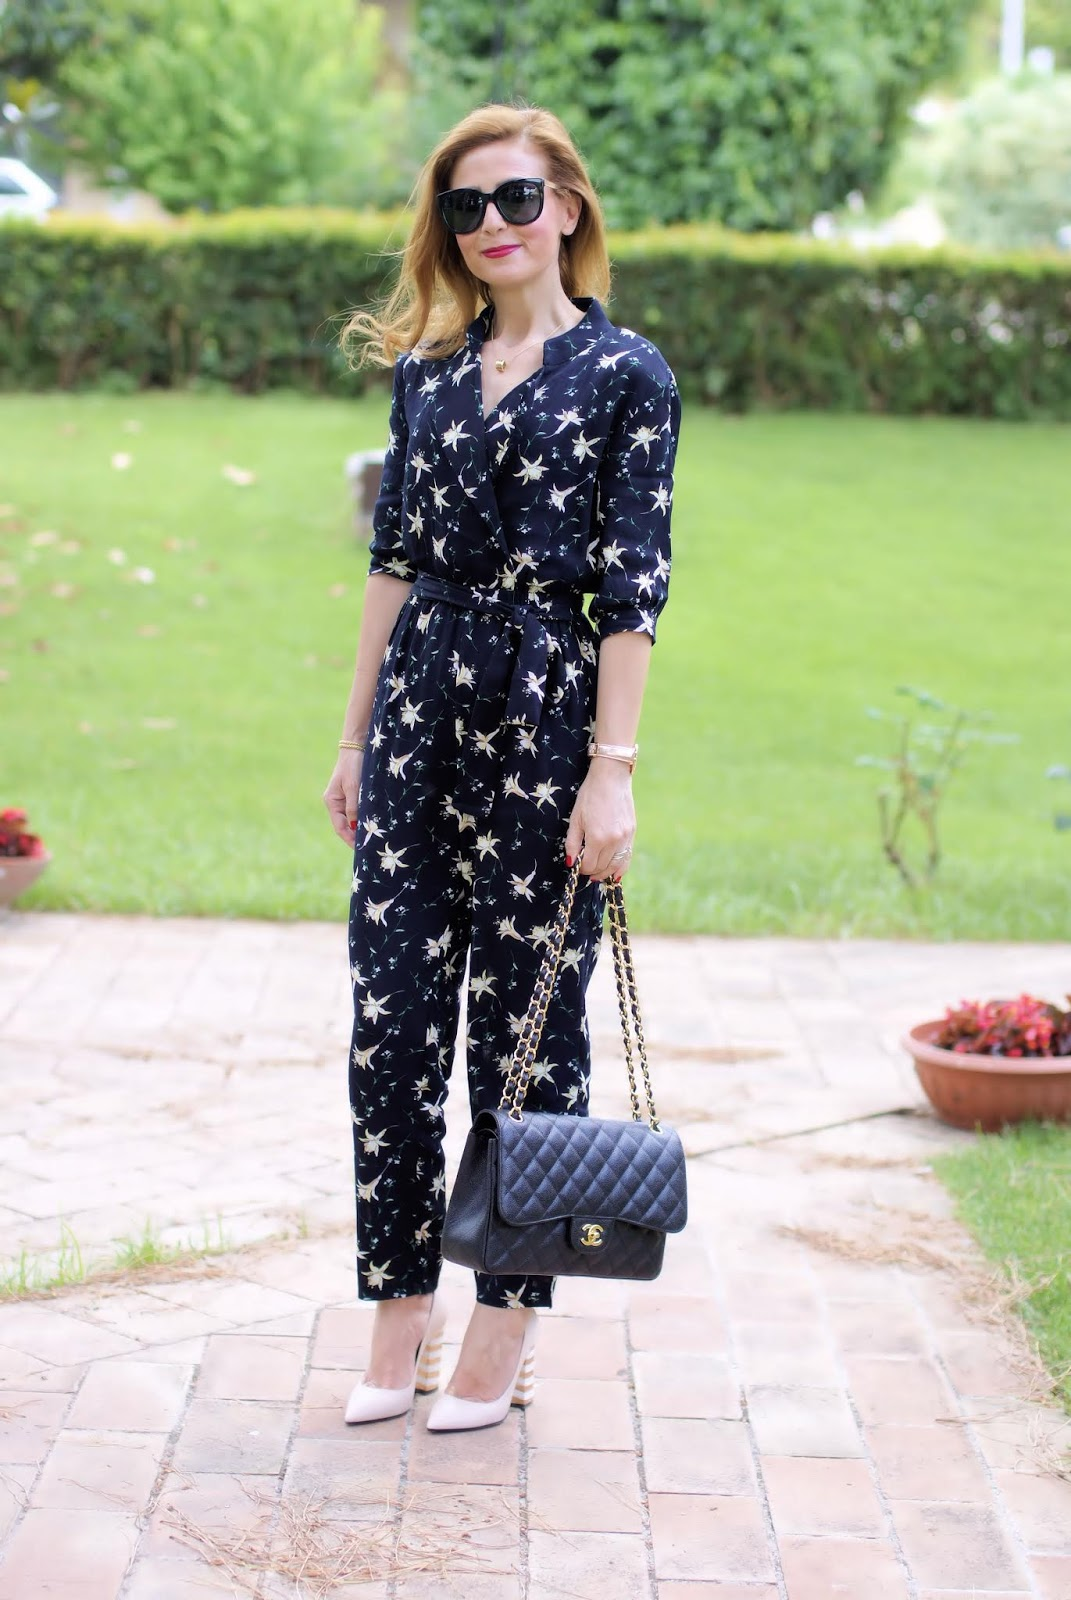 Floral jumpsuit, Chanel 2.55 and Pollini shoes on Fashion and Cookies fashion blog, fashion blogger style